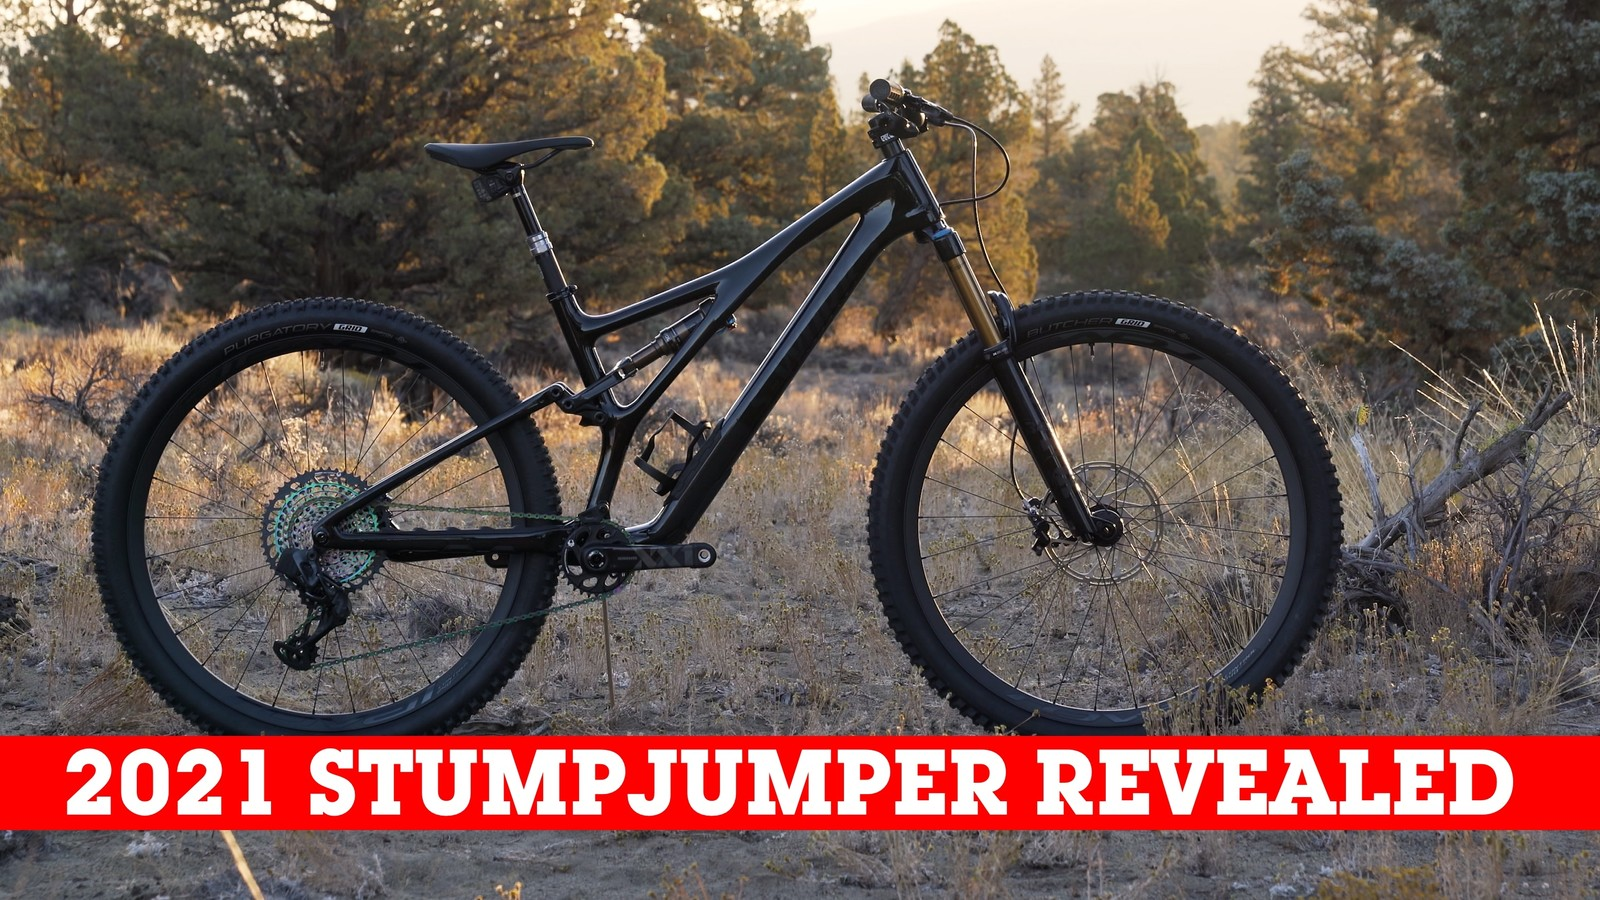 Is This the Benchmark Trail Bike? The All-New Specialized Stumpjumper Line